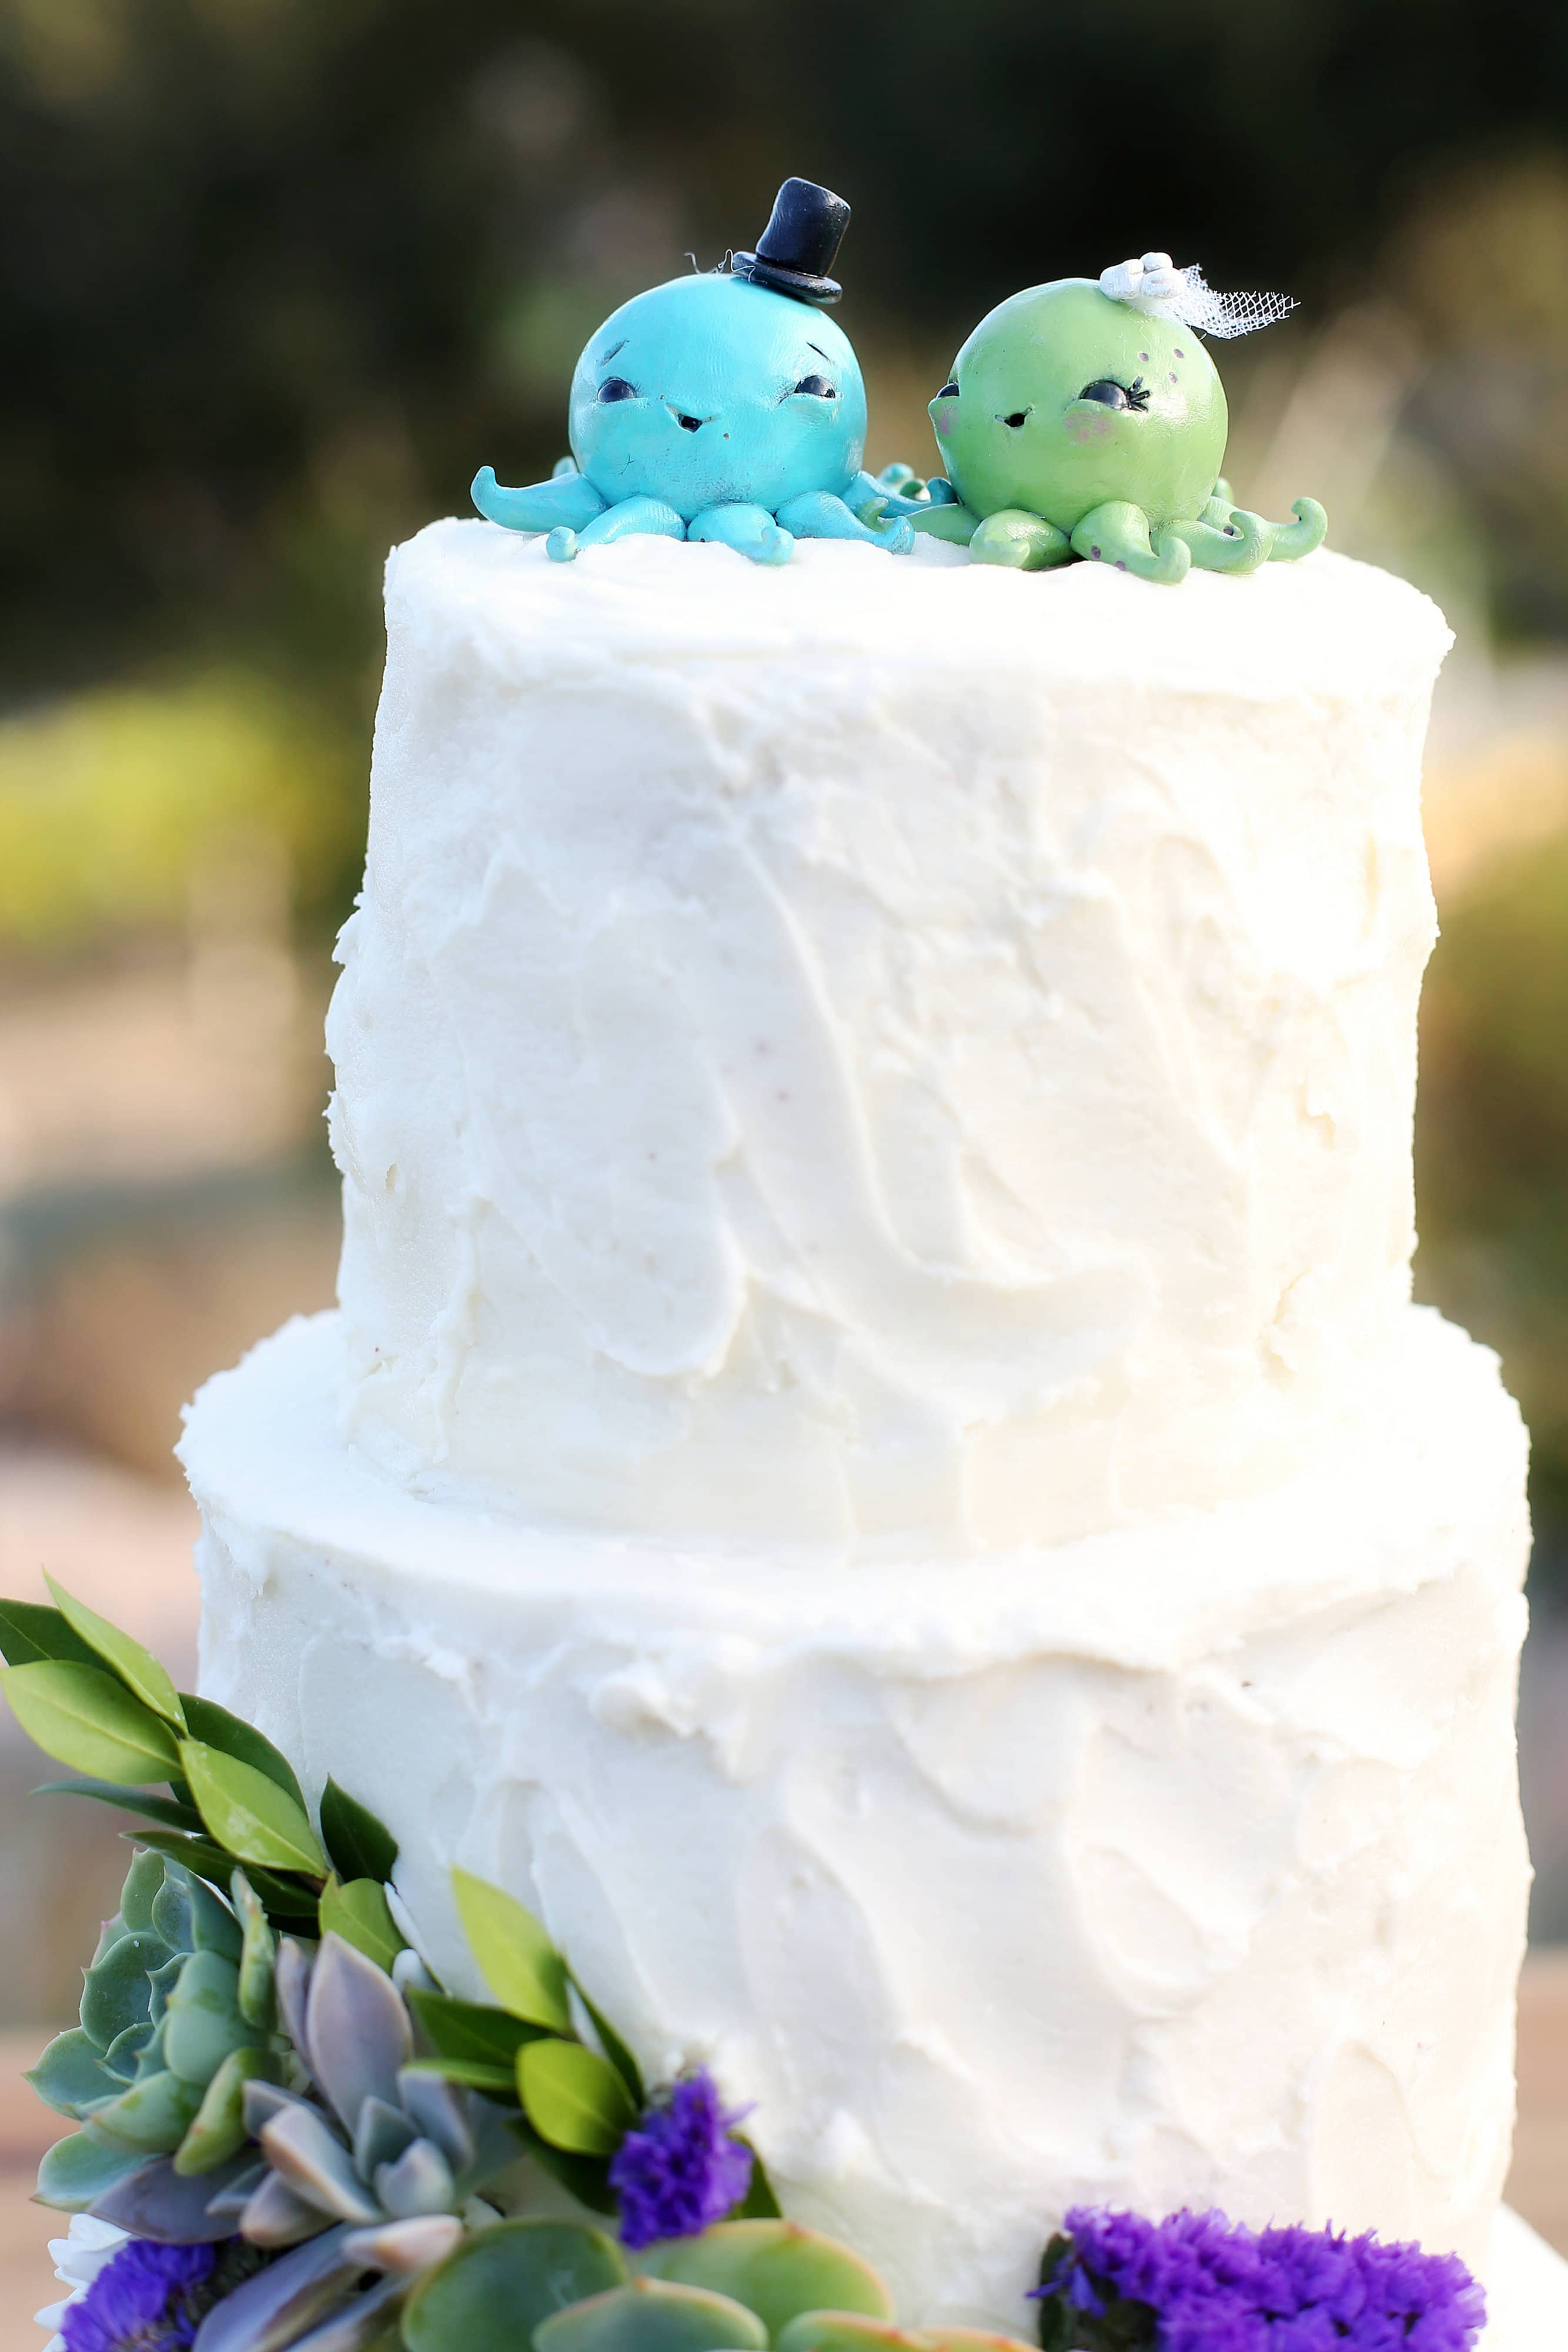 The Casitas Estate octopus wedding cake